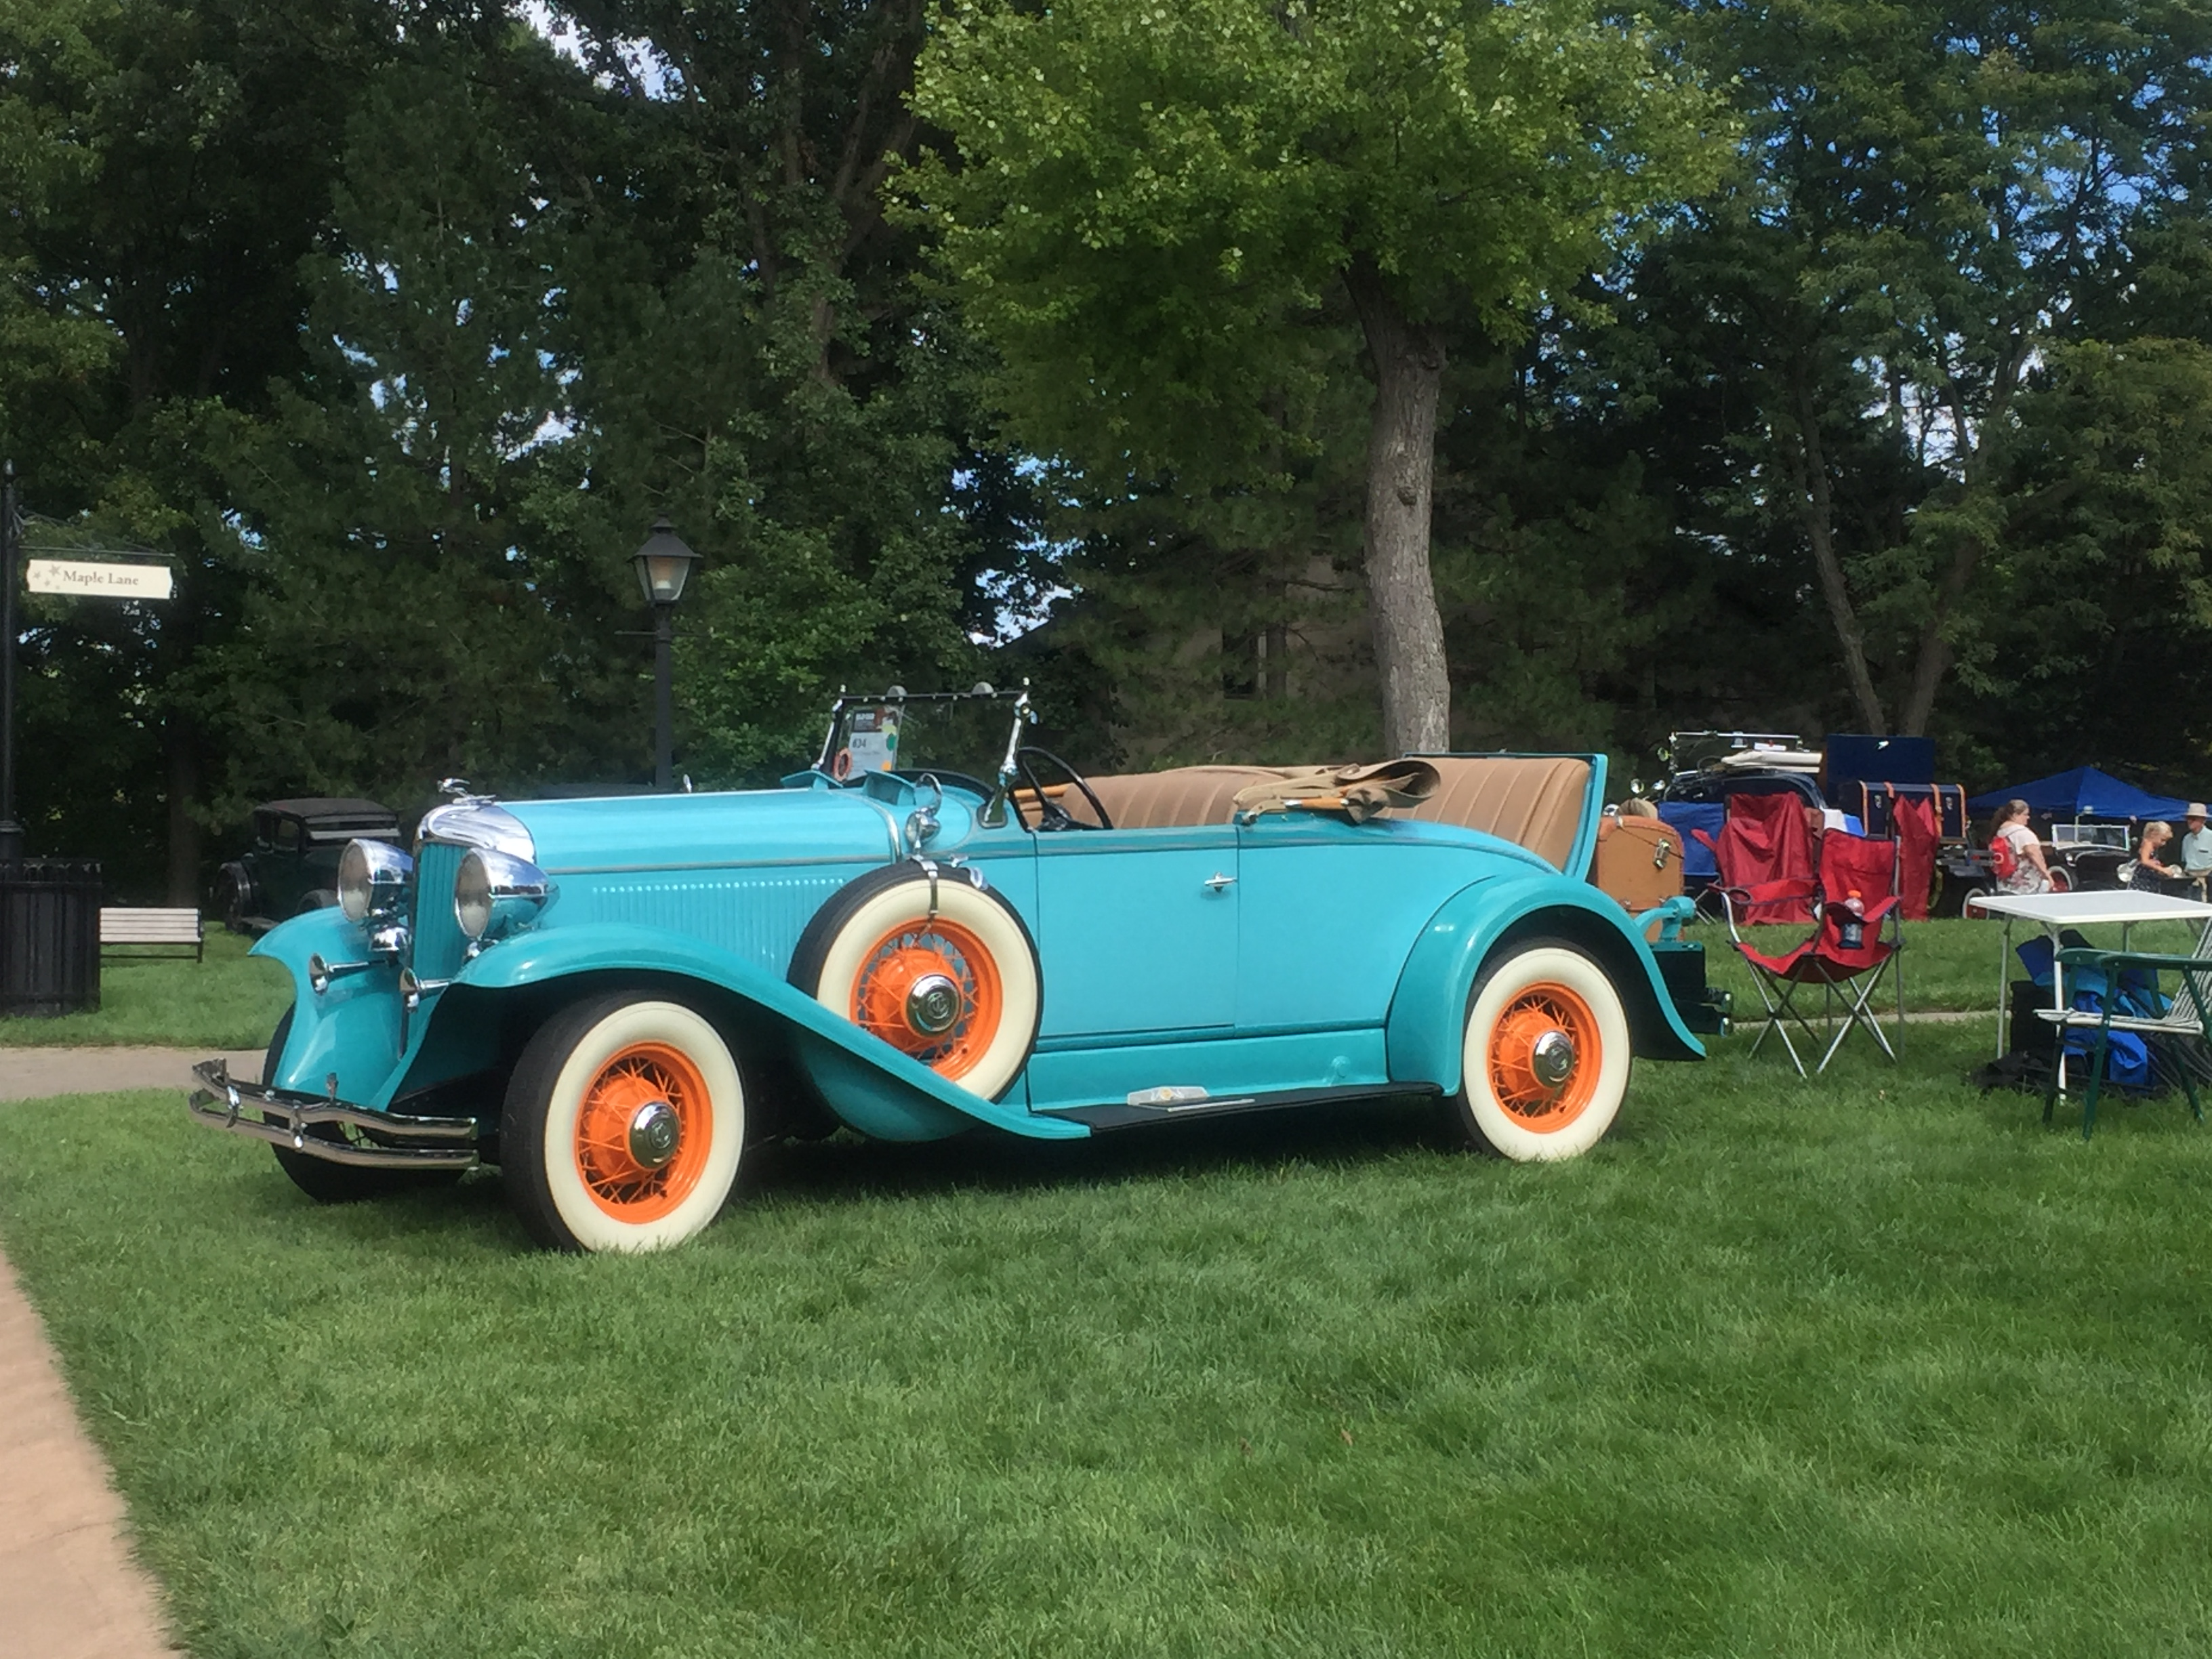 Photo of classic convertible 1930s car painted aqua blue with whitewall tires.